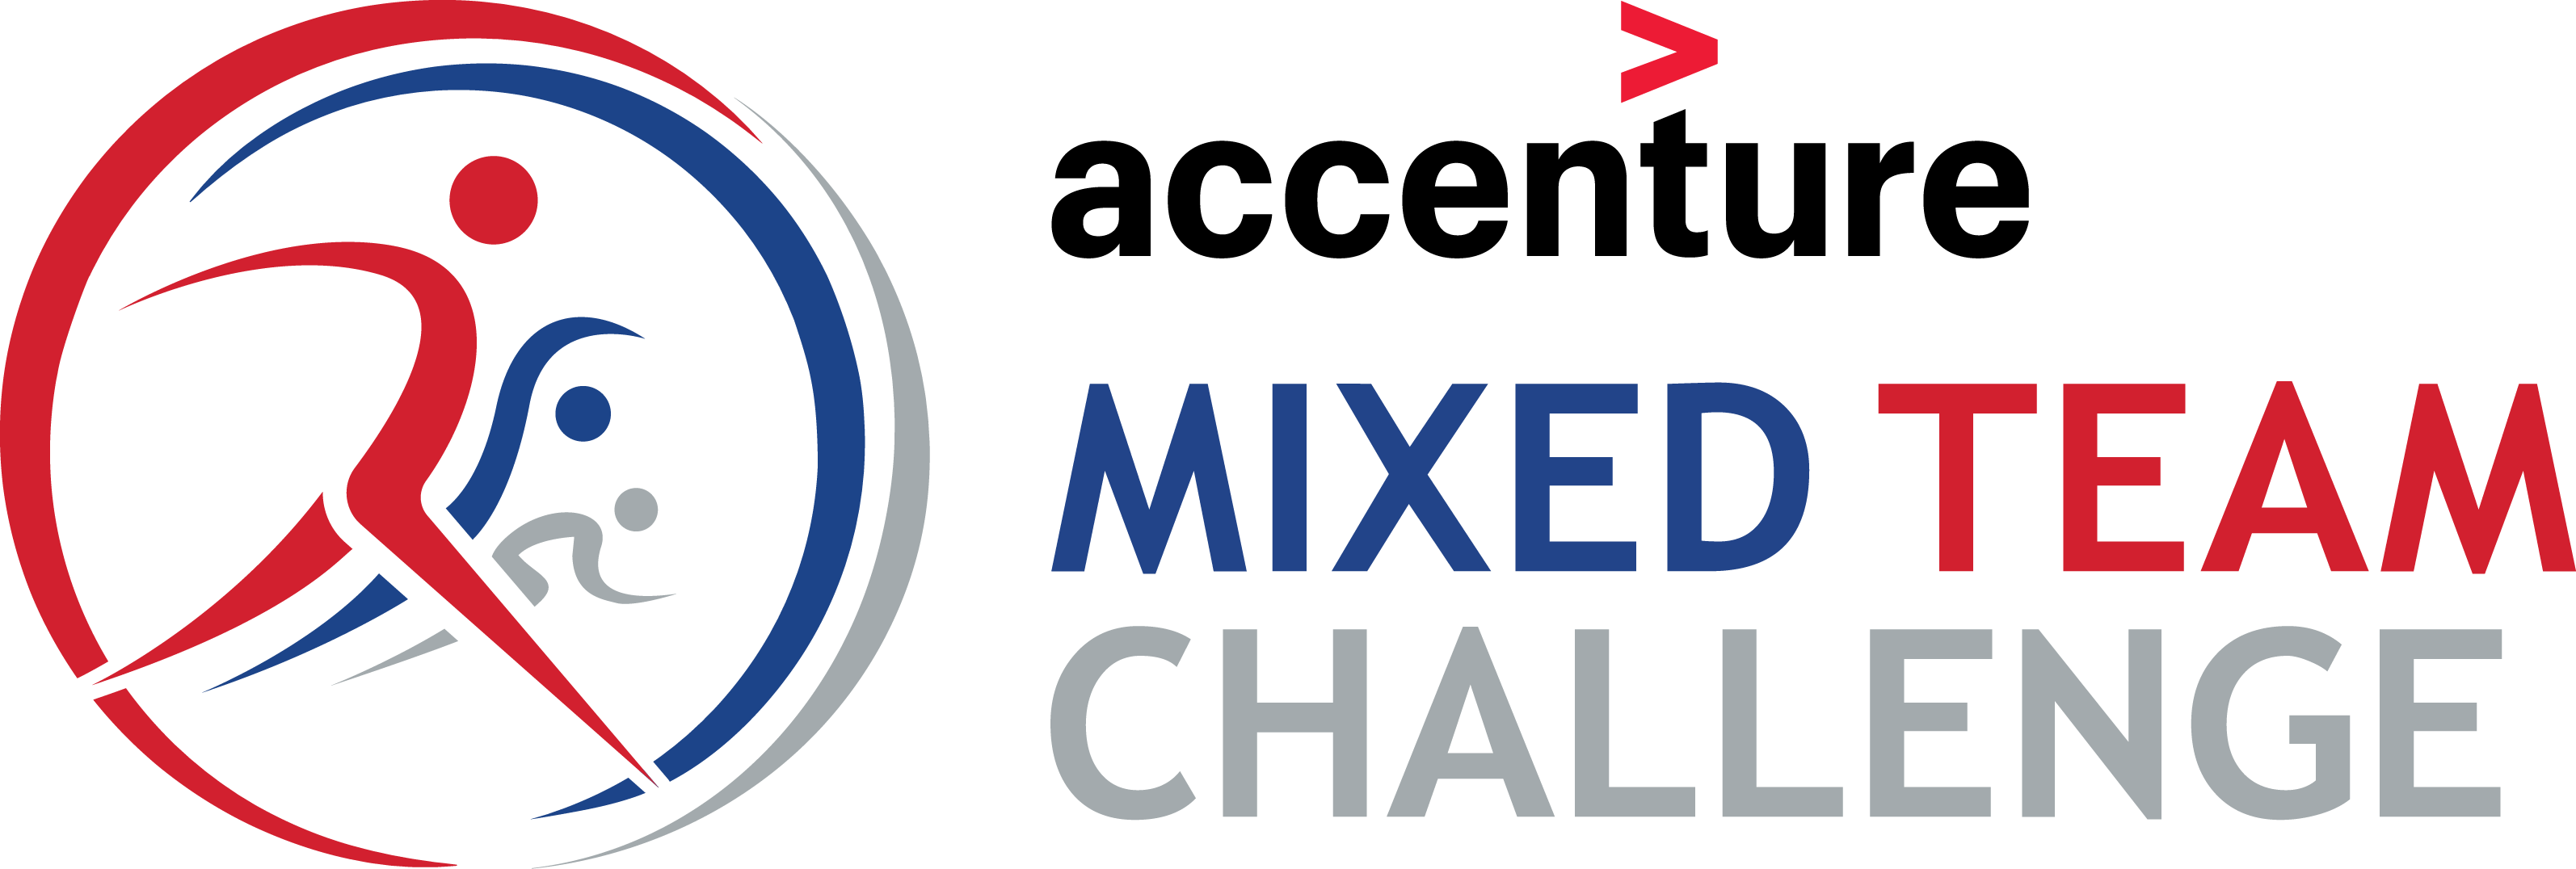 Mixed Team Challenge